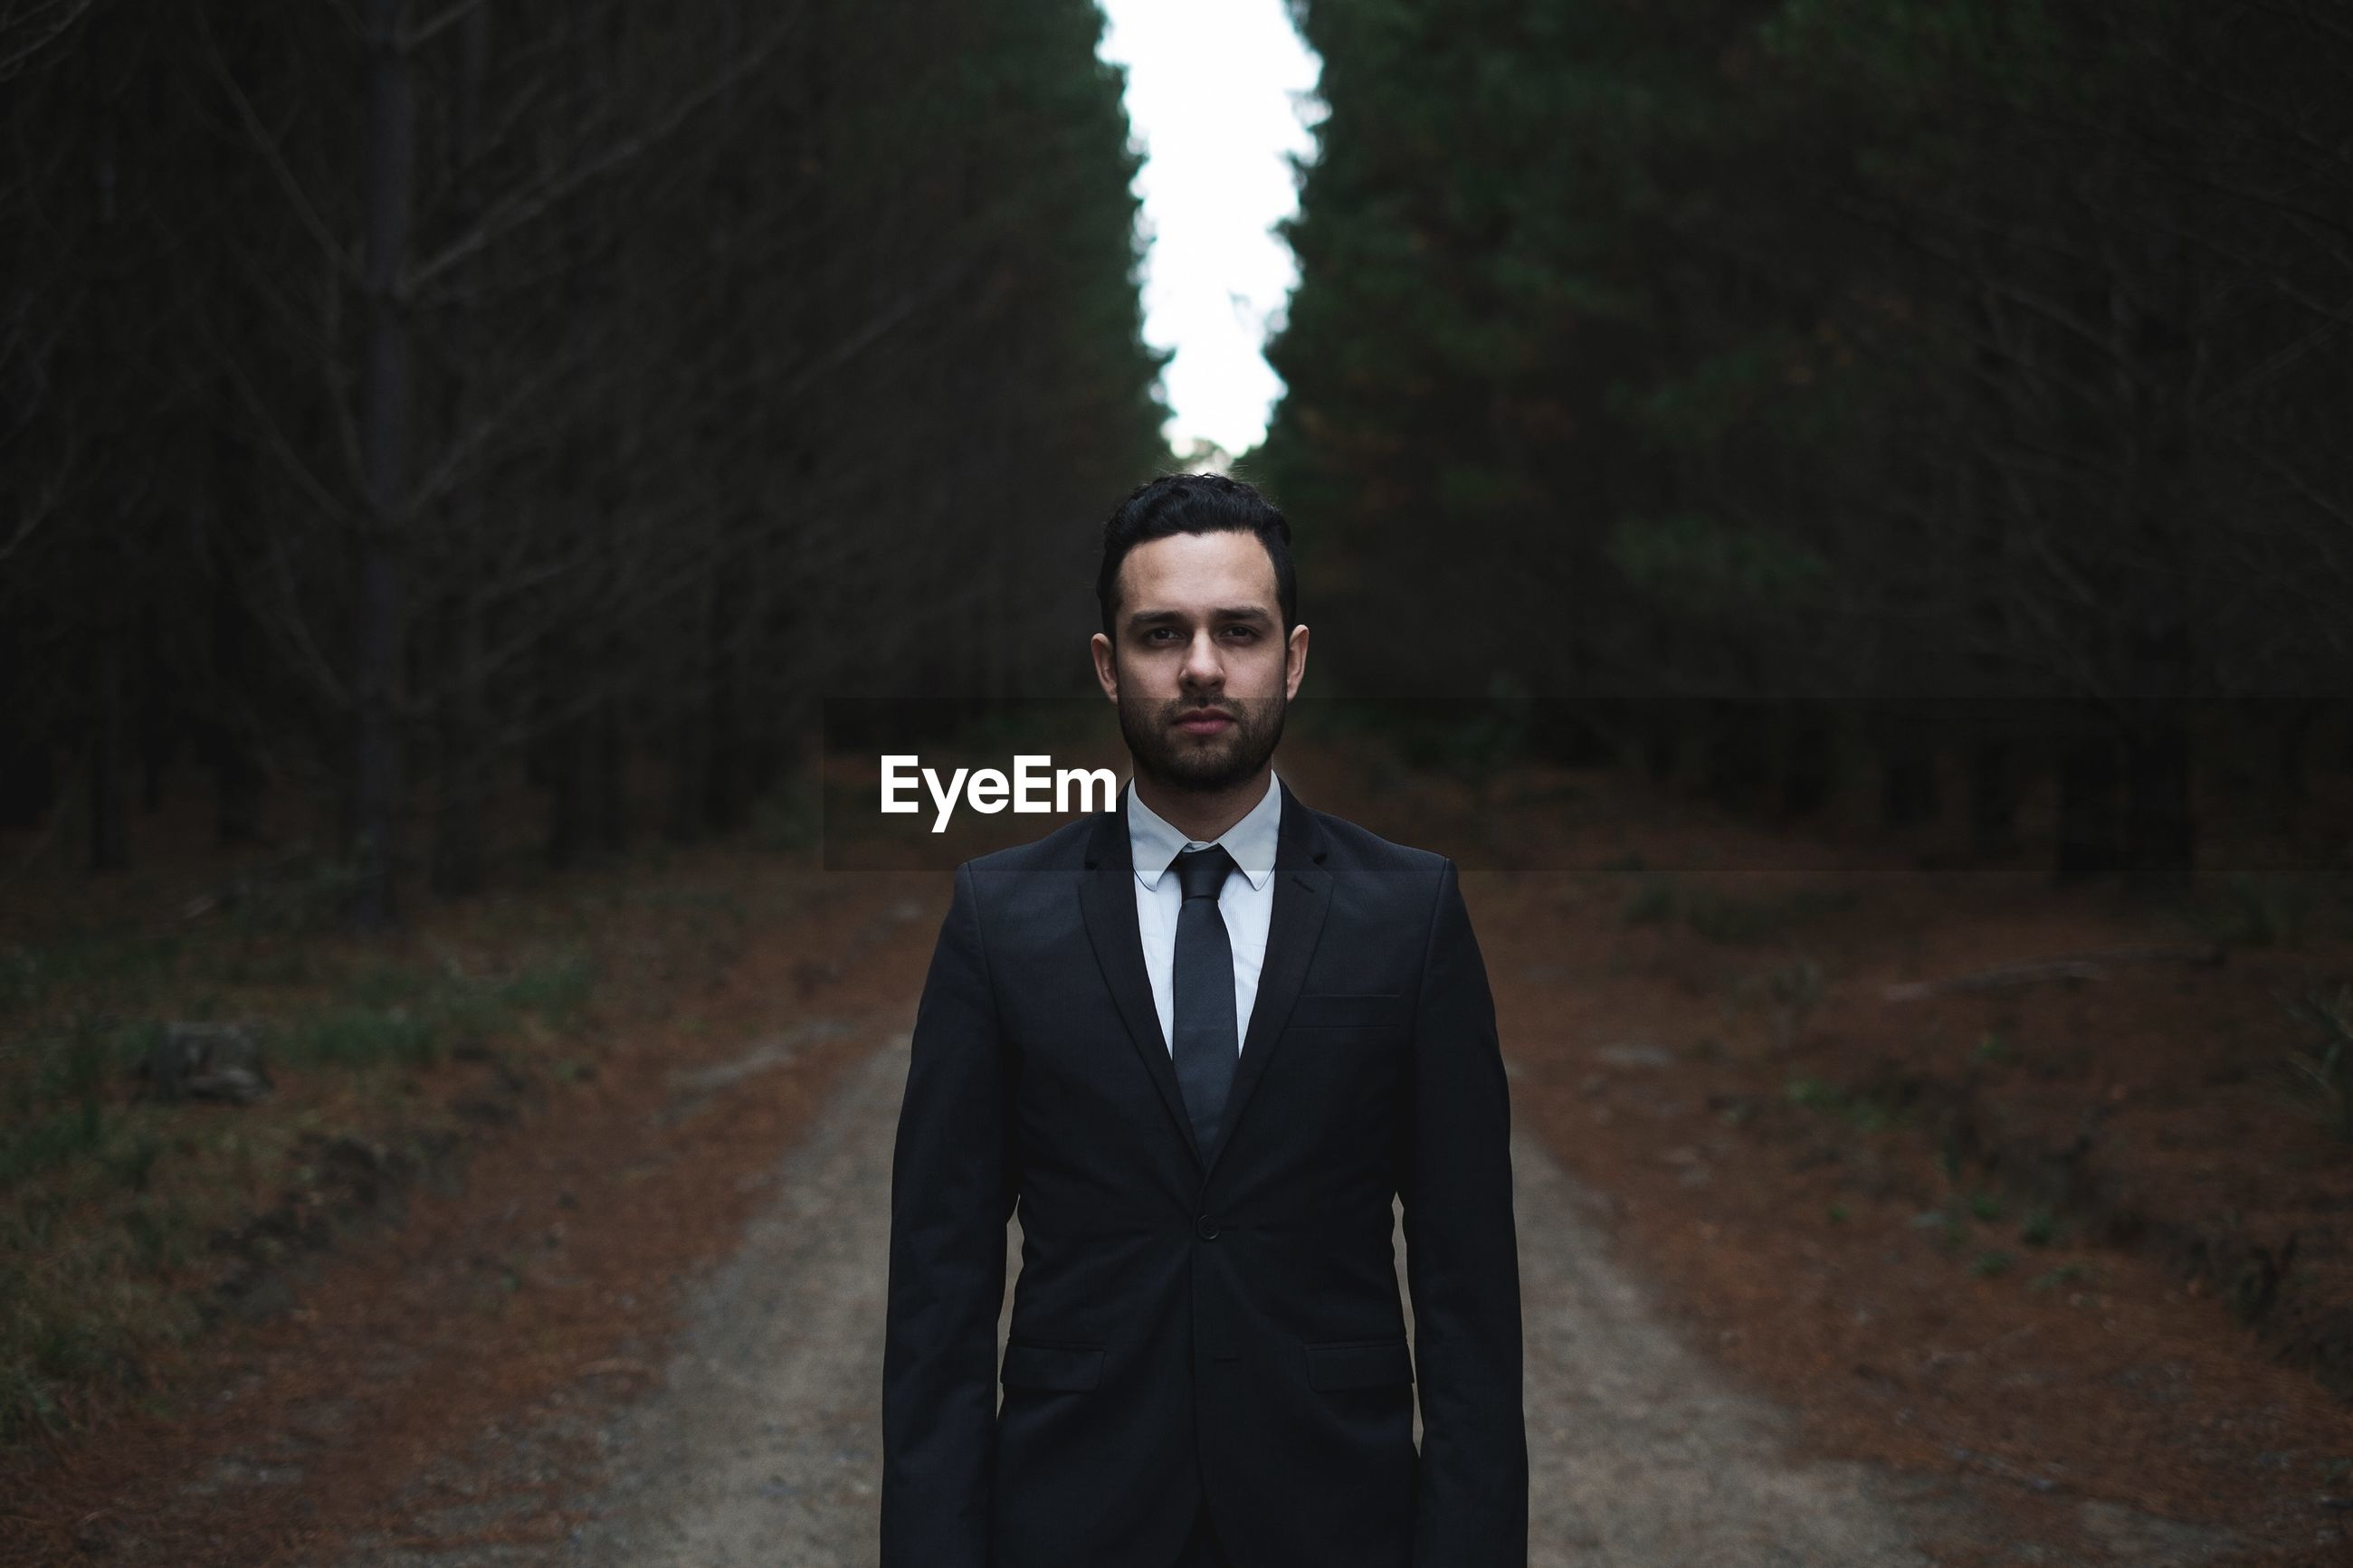 Man wearing suit in forest